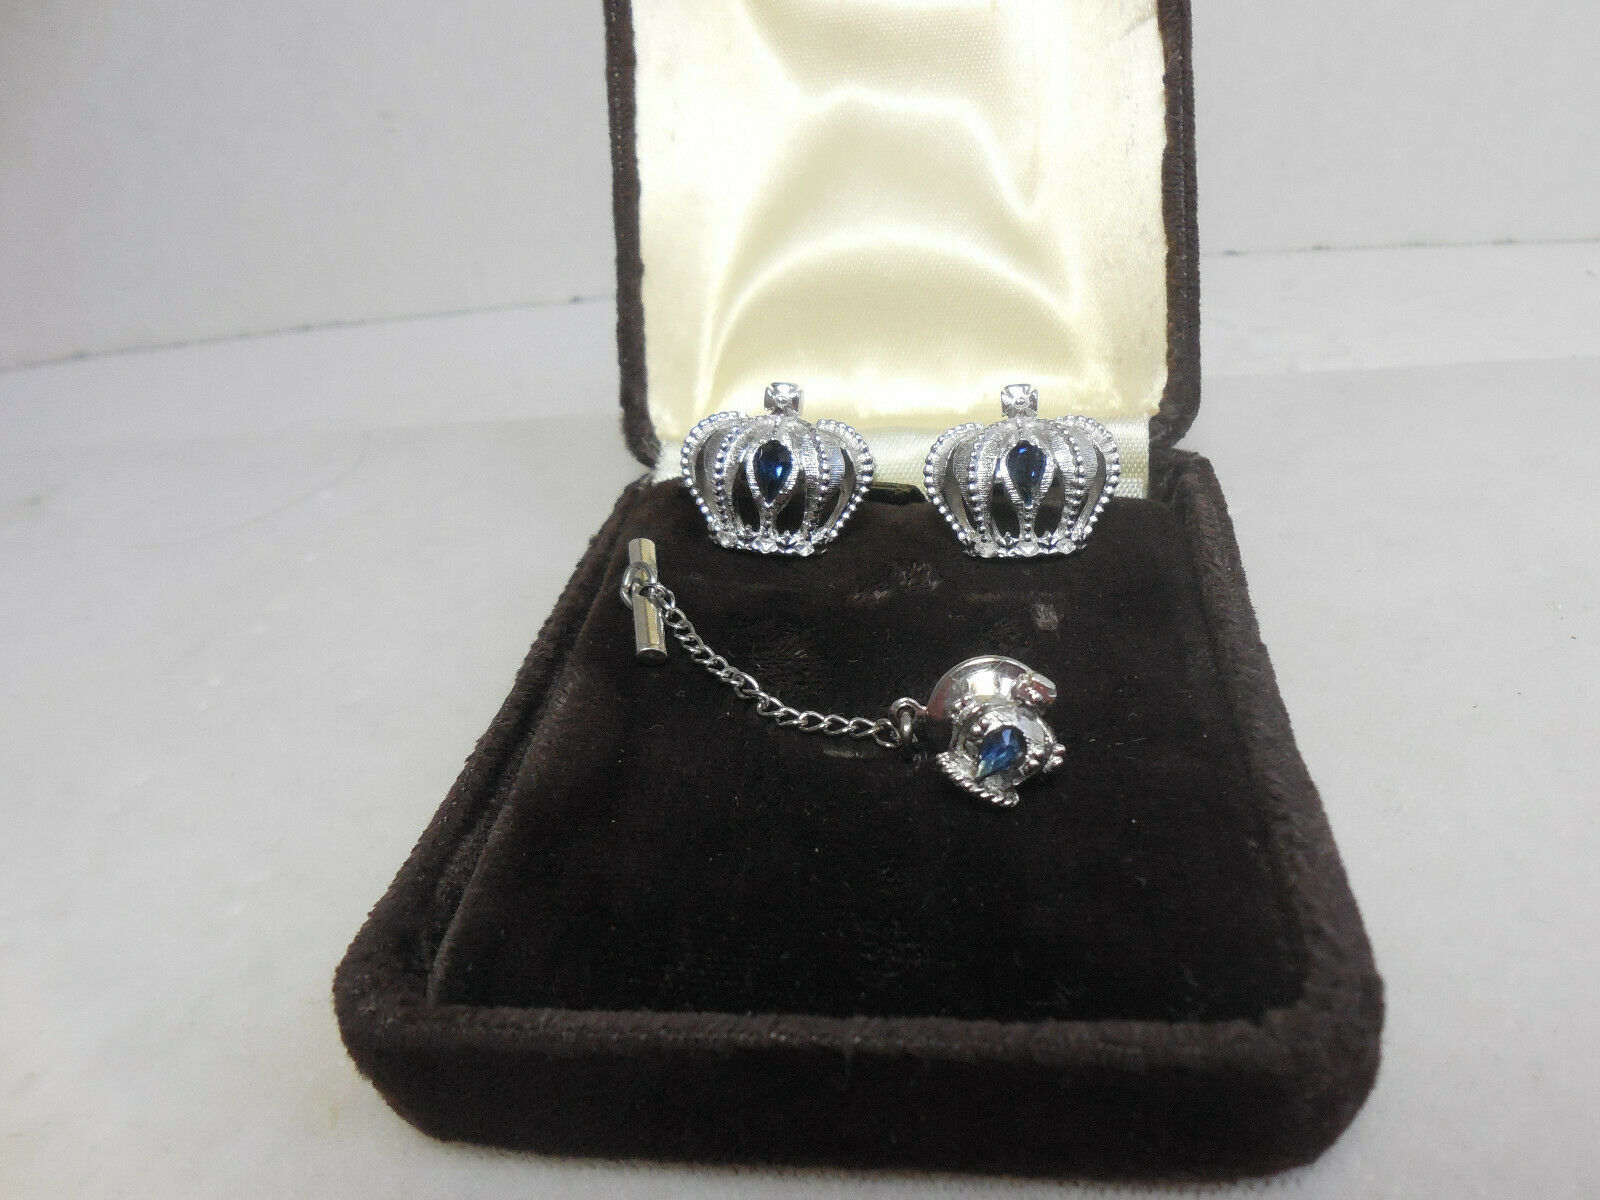 Silver and Blue Wrap Around Cuff Vintage Swank Cufflinks and Tie Tack Set